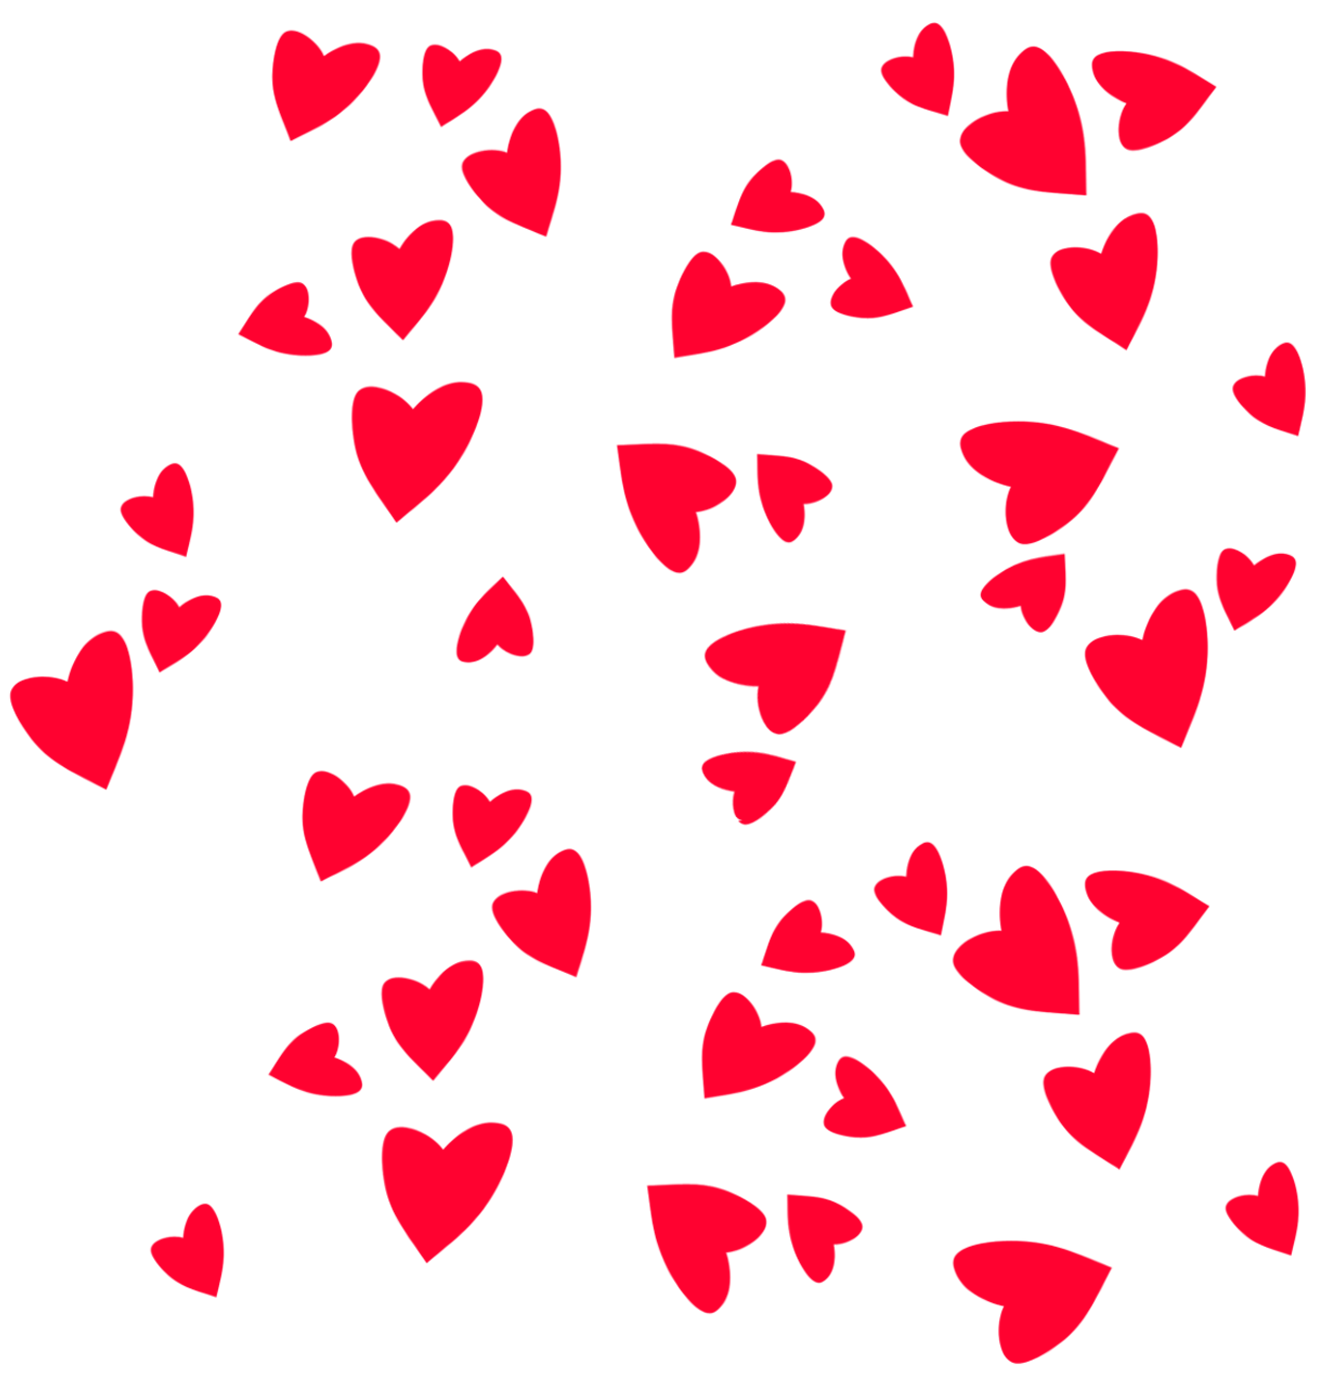 Valentines Day PNG Hearts Decor Clipart Picture.